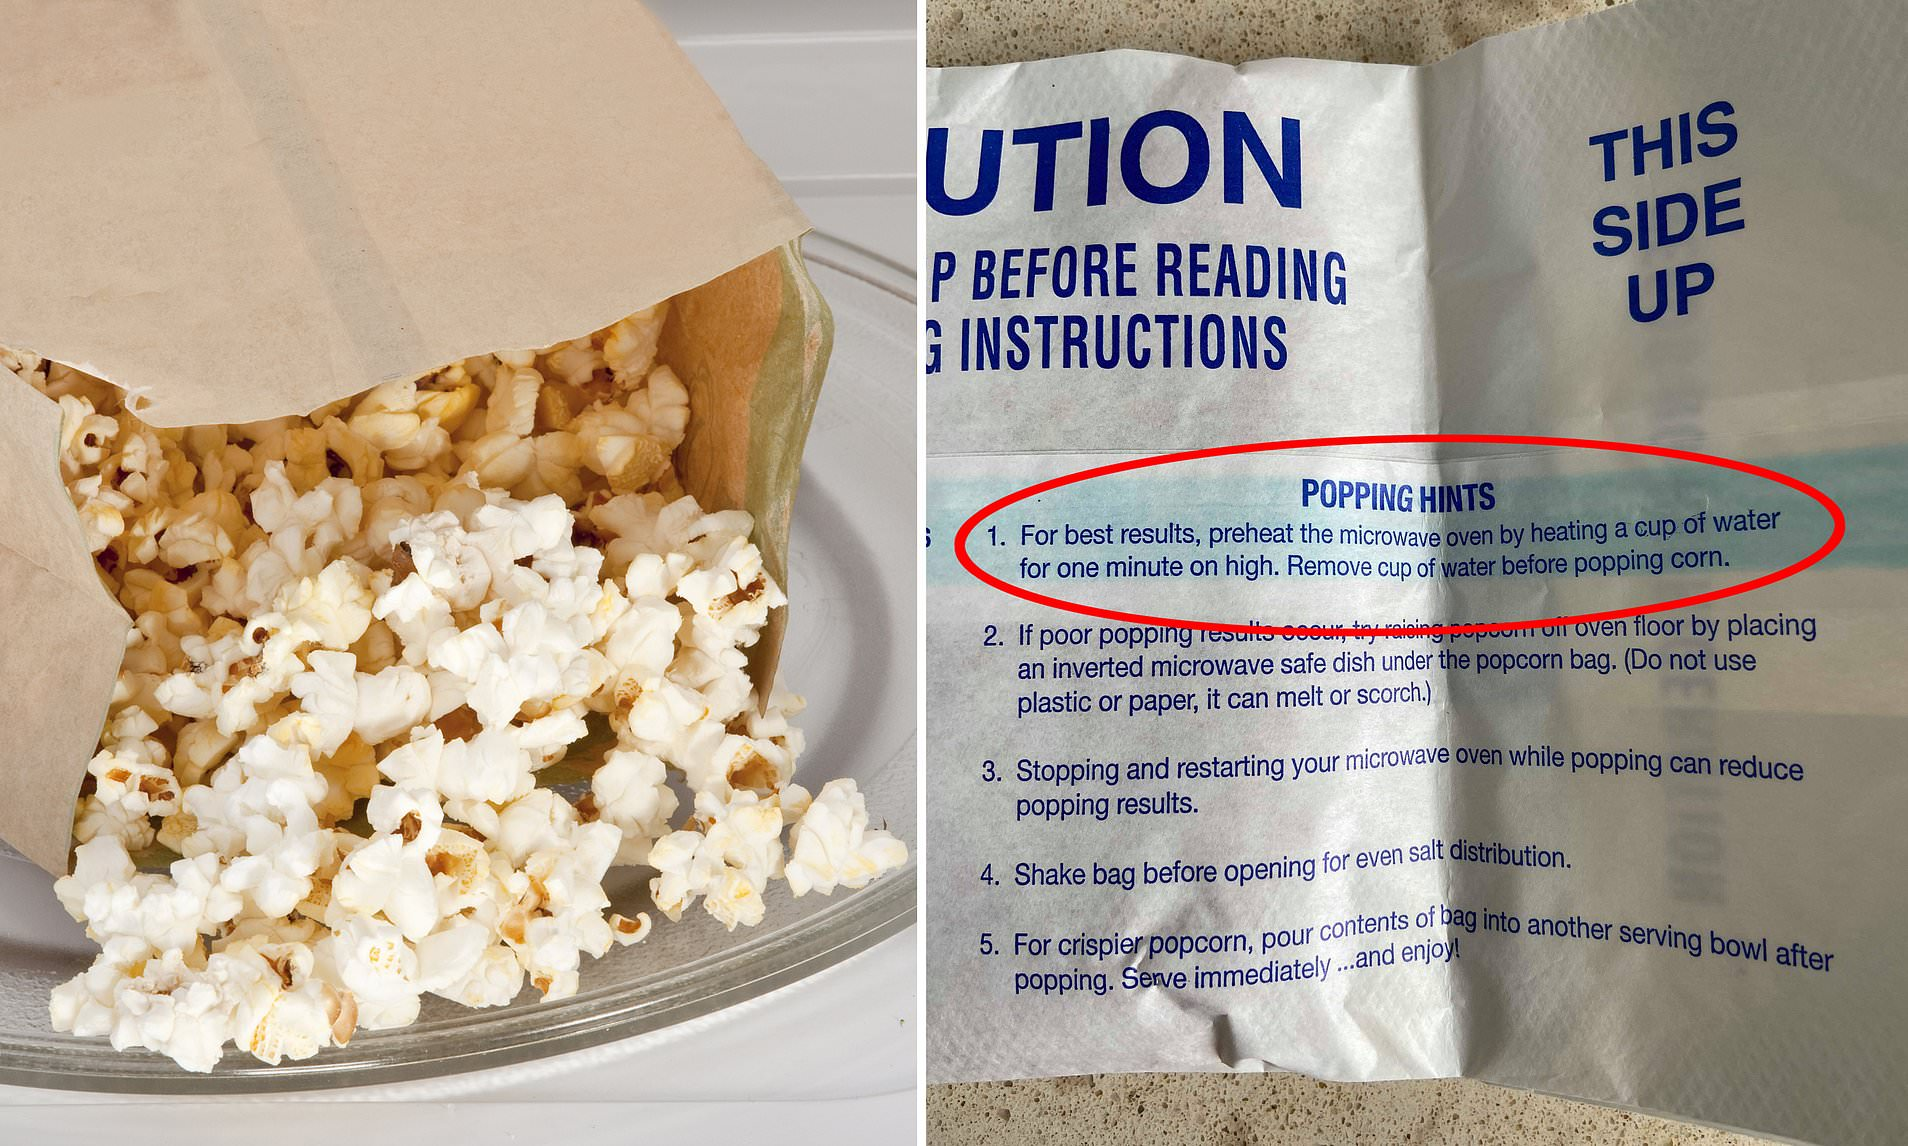 been microwaving your popcorn wrong